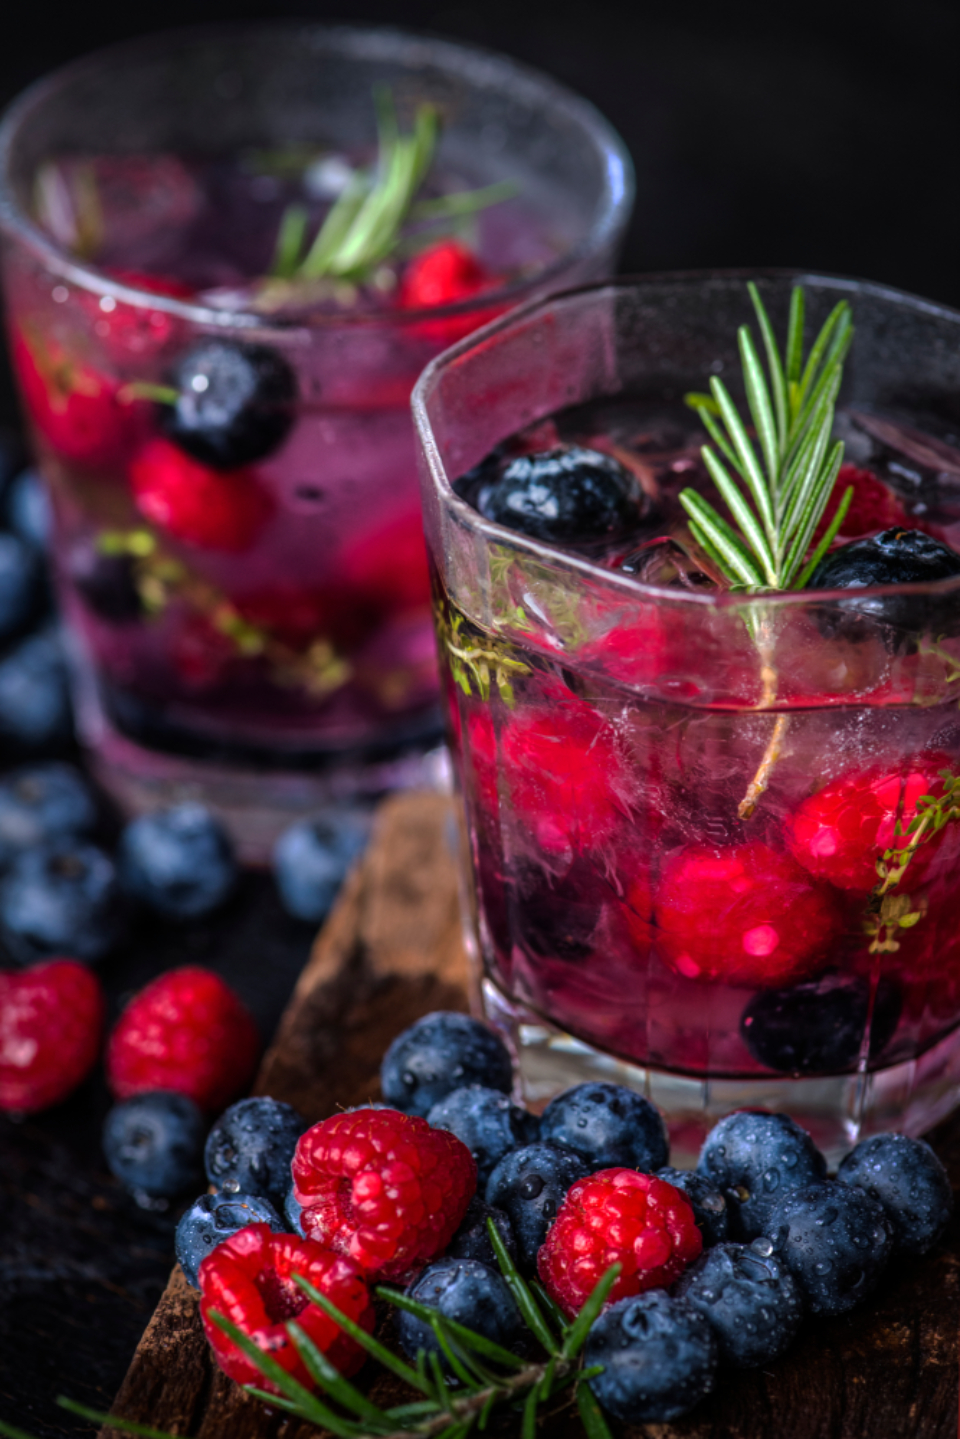 beverage blueberry closeup cold water detox detox drink detox water drink drinking flavored food photography fresh freshness fruit fruit flavored water fruit infused water healthcare healthy herb hydrated infused water ingredients juice macro menu m